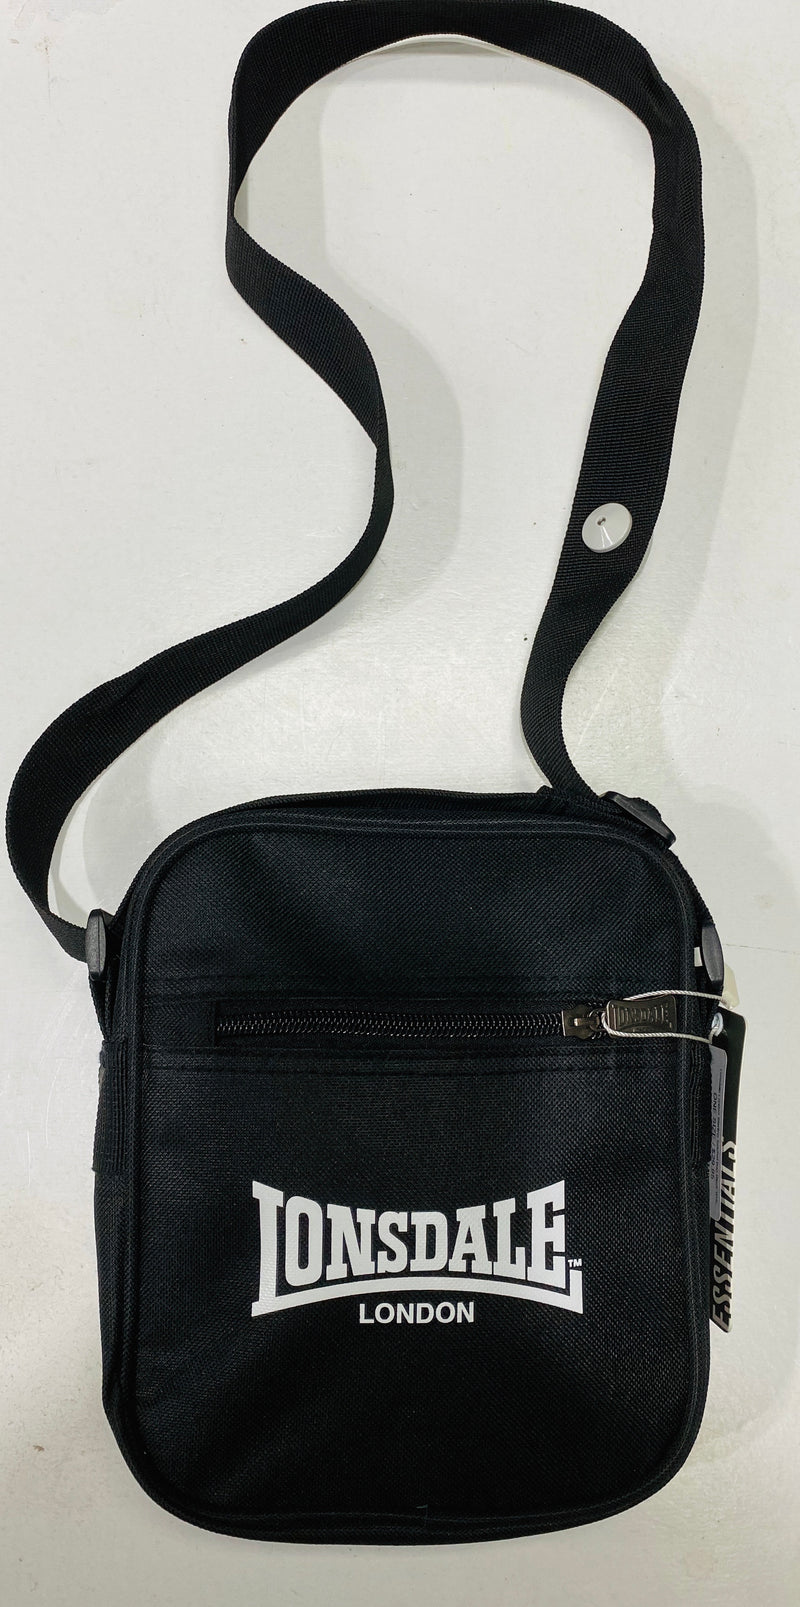 Lonsdale London Sterling Satchel Bag Black White LBE708